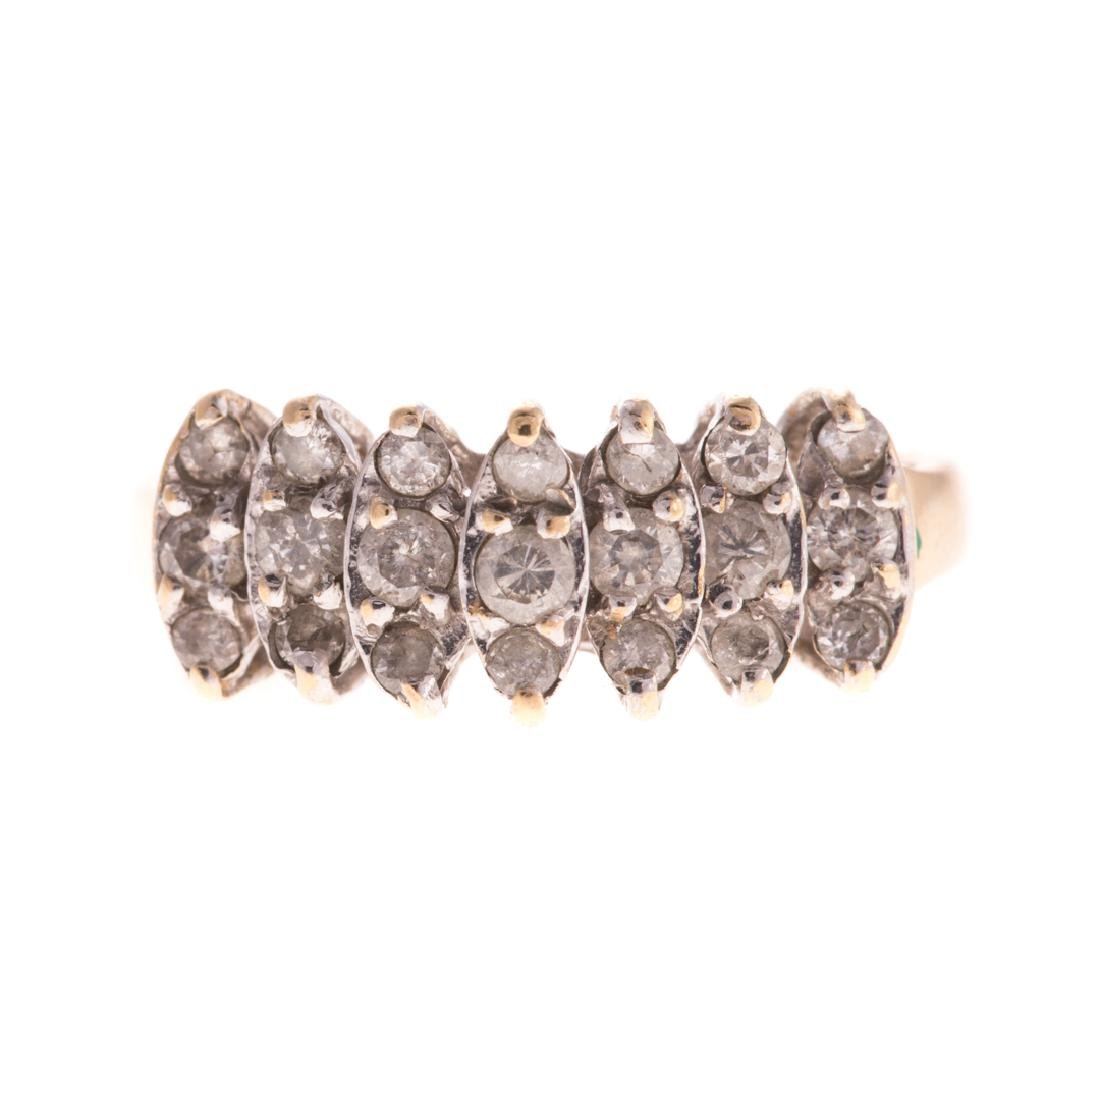 A Lady's Diamond Ring in 10K Gold